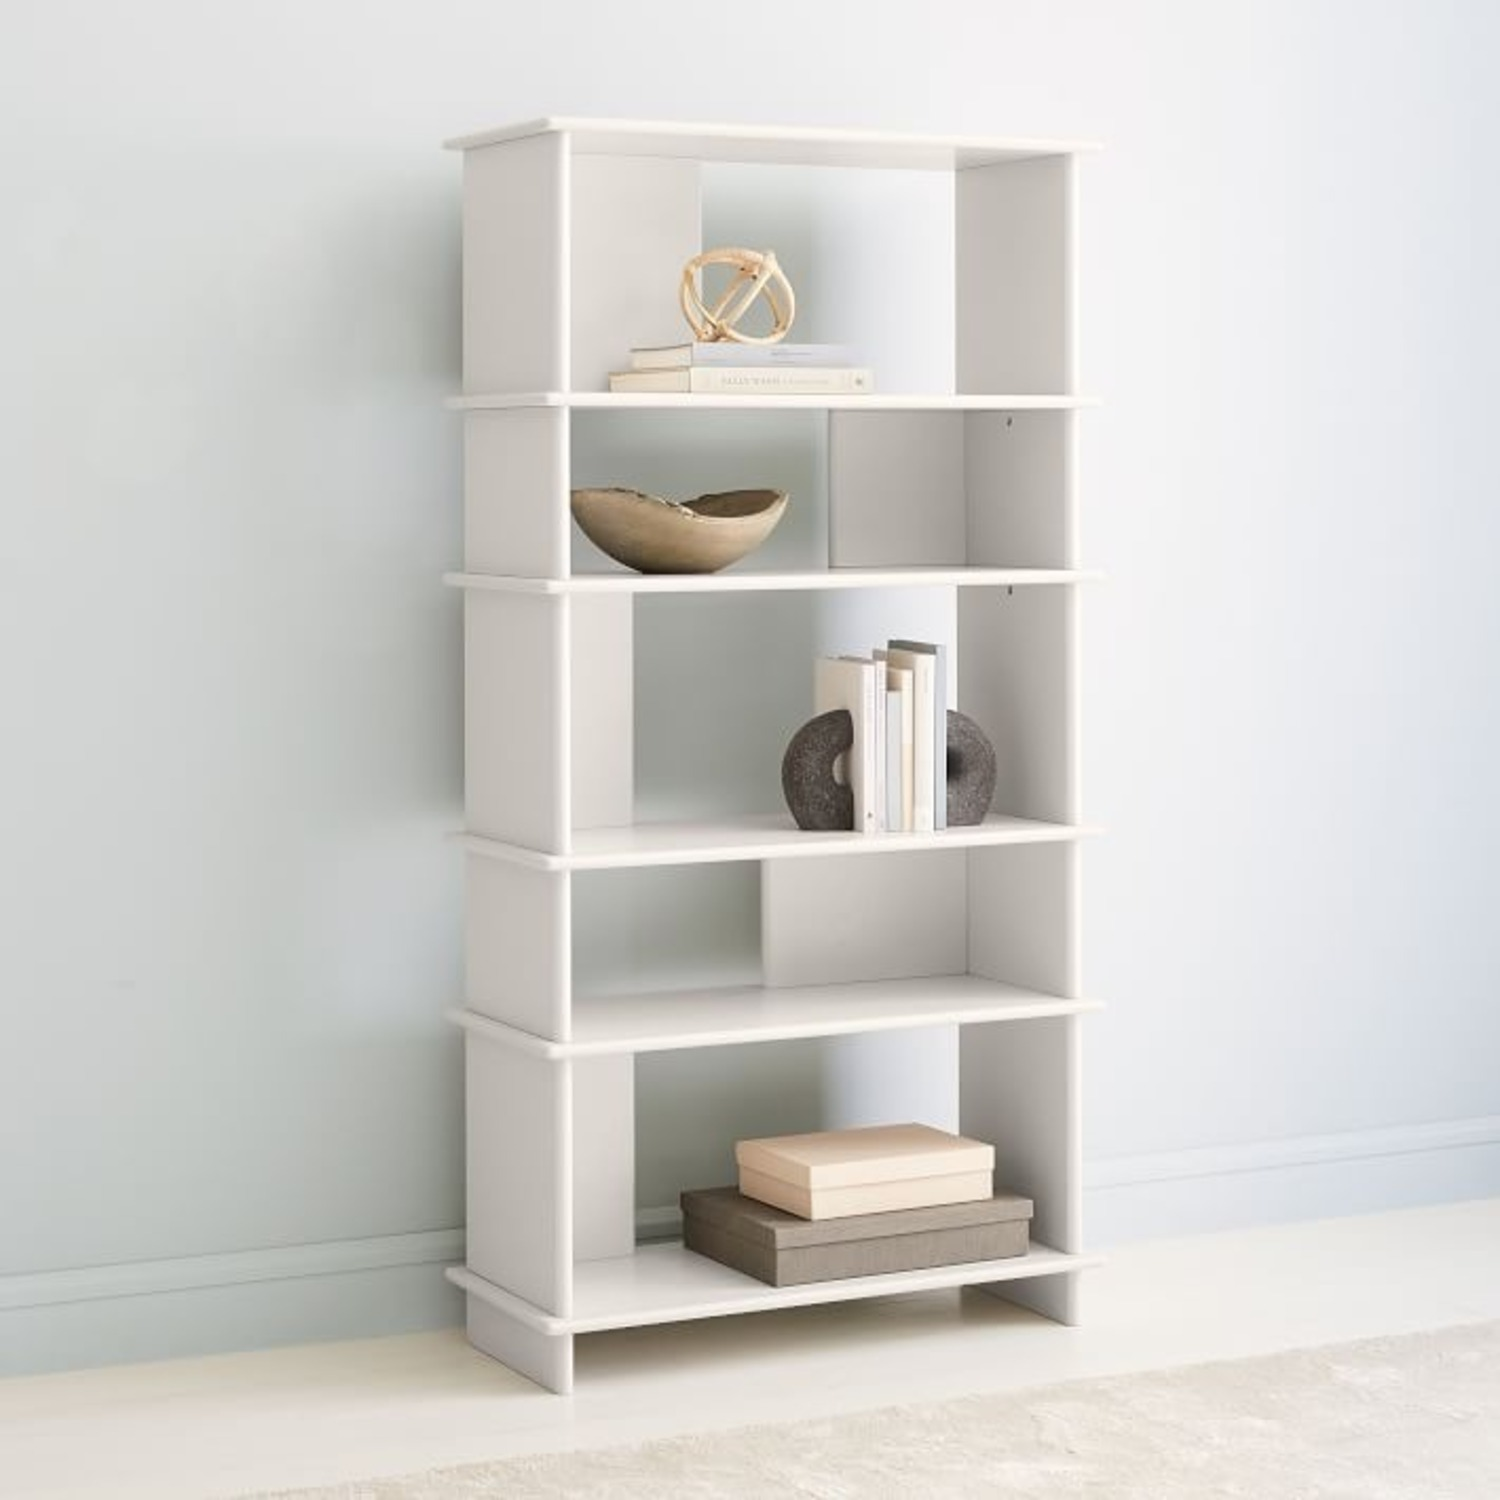 West Elm Kaira Wide Bookcase - Oyster - image-2